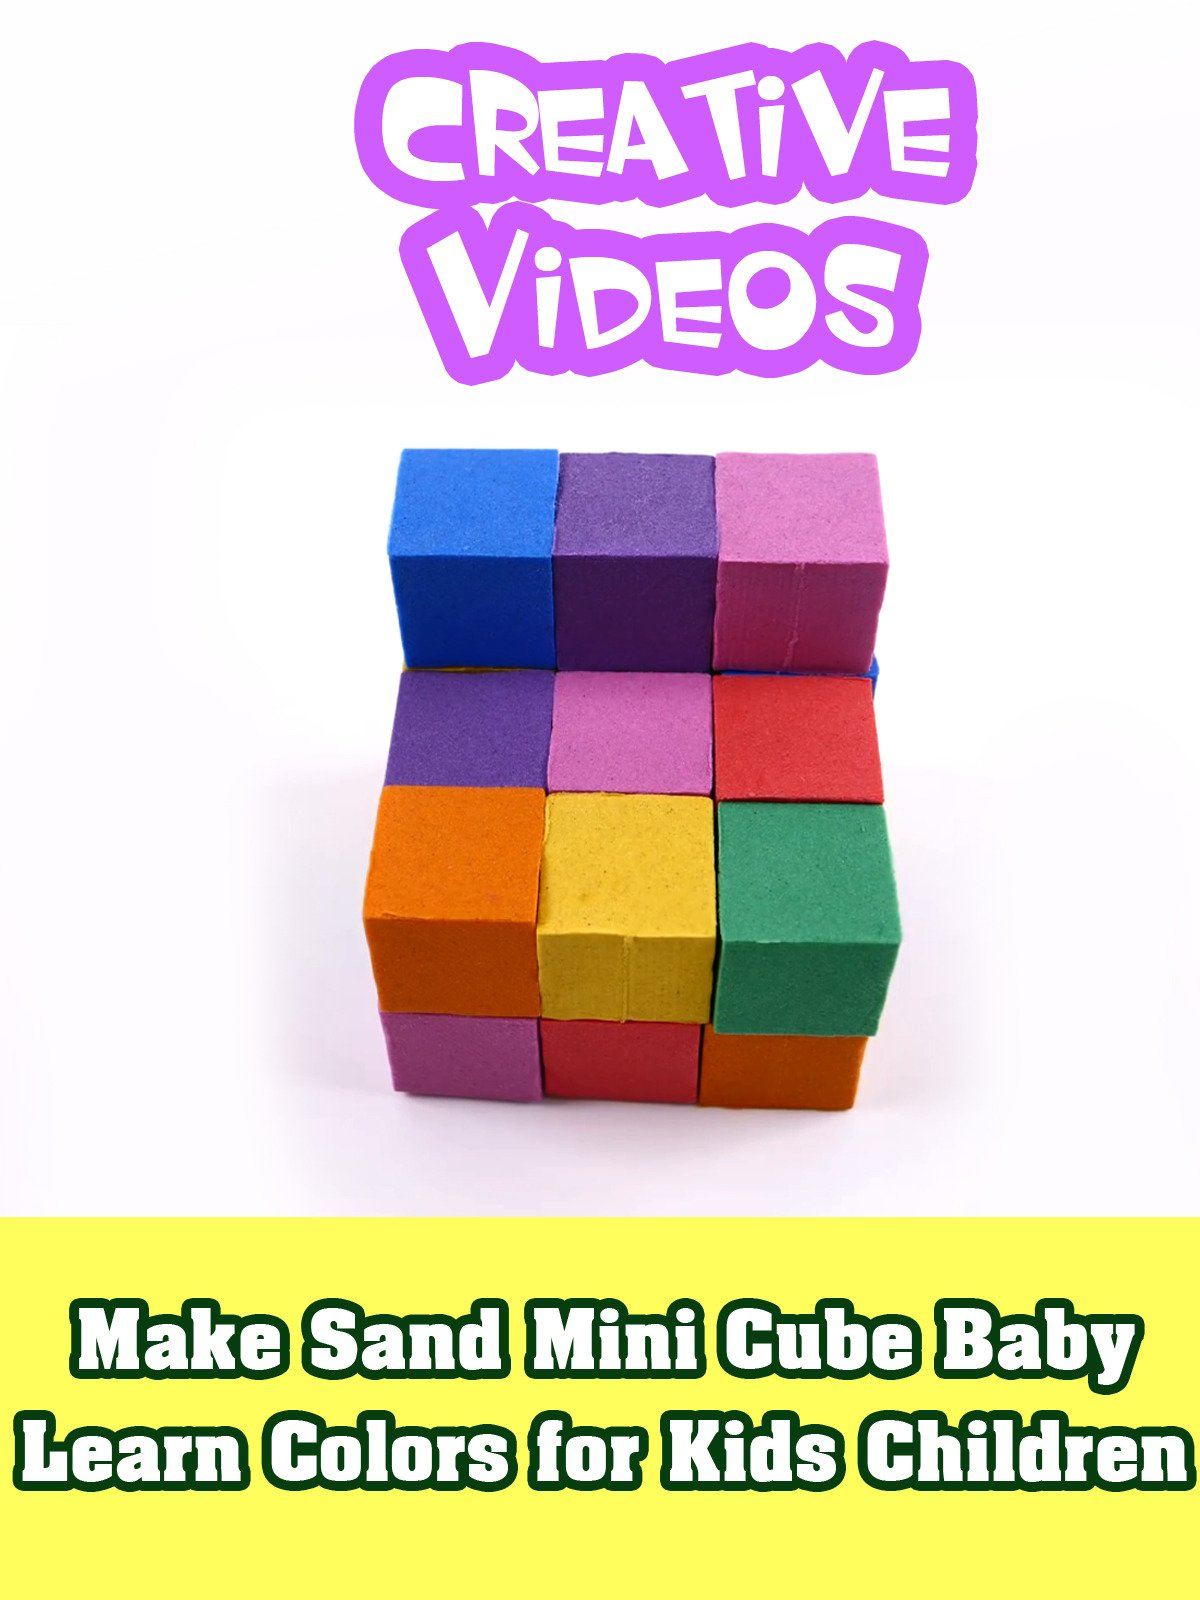 Make Sand Mini Cube Baby Learn Colors for Kids Children